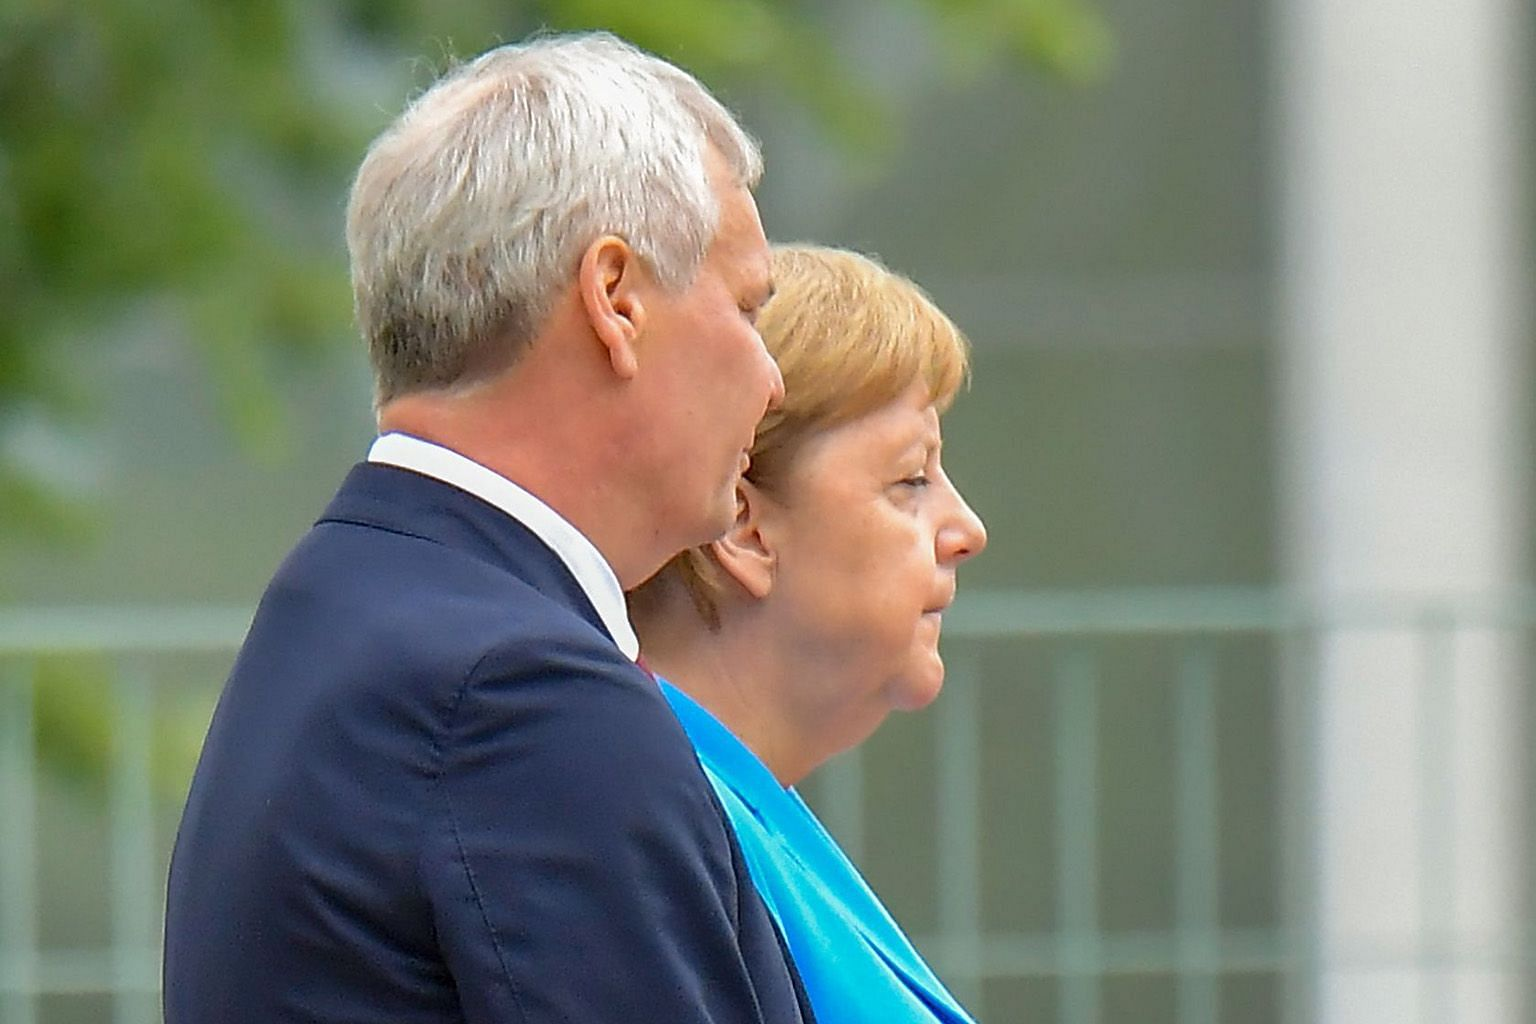 German Chancellor Angela Merkel and Finnish Prime Minister Antti Rinne at the Chancellery yesterday in Berlin, where she was seen shaking.